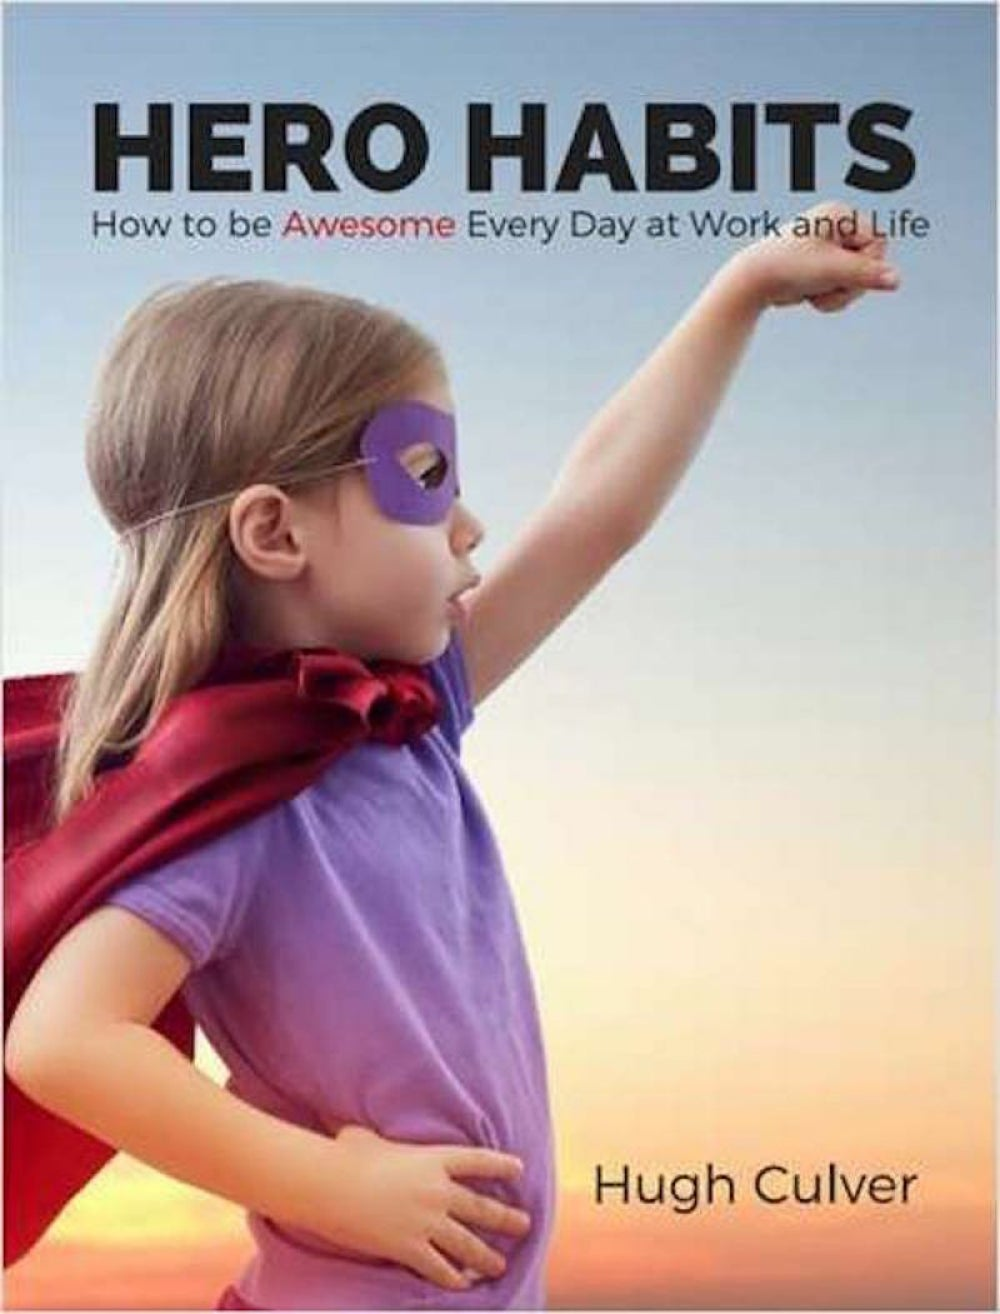 Hero Habits – How to be Awesome Every Day at Work and Life